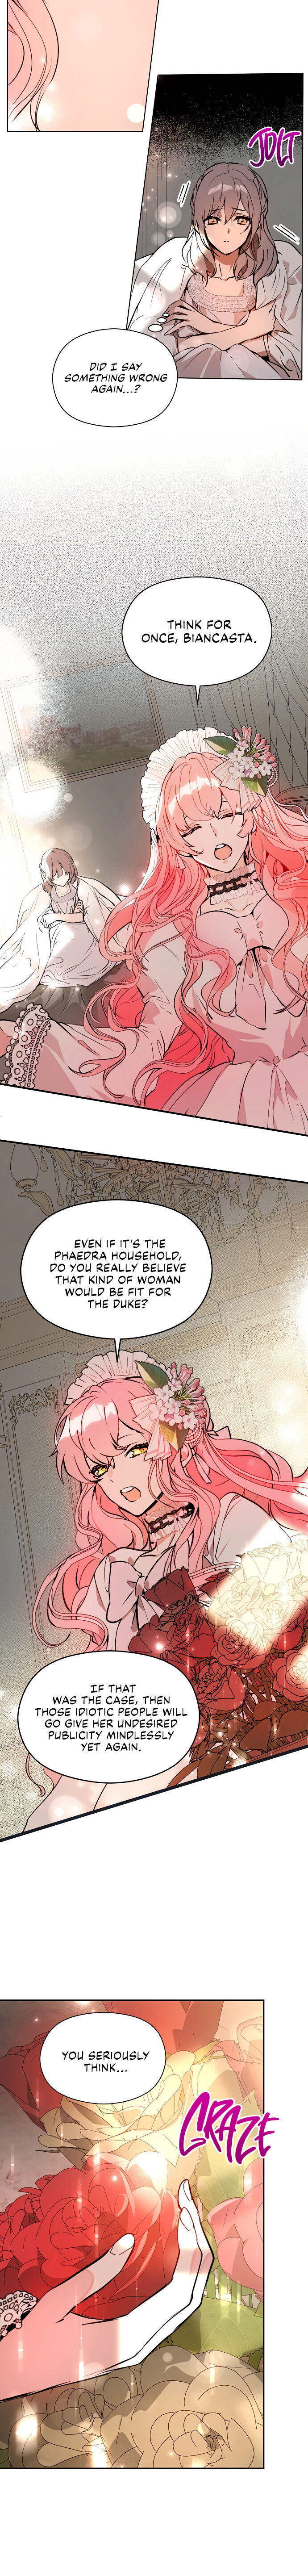 I Didn'T Mean To Seduce The Male Lead Chapter 22 page 8 - Mangakakalots.com